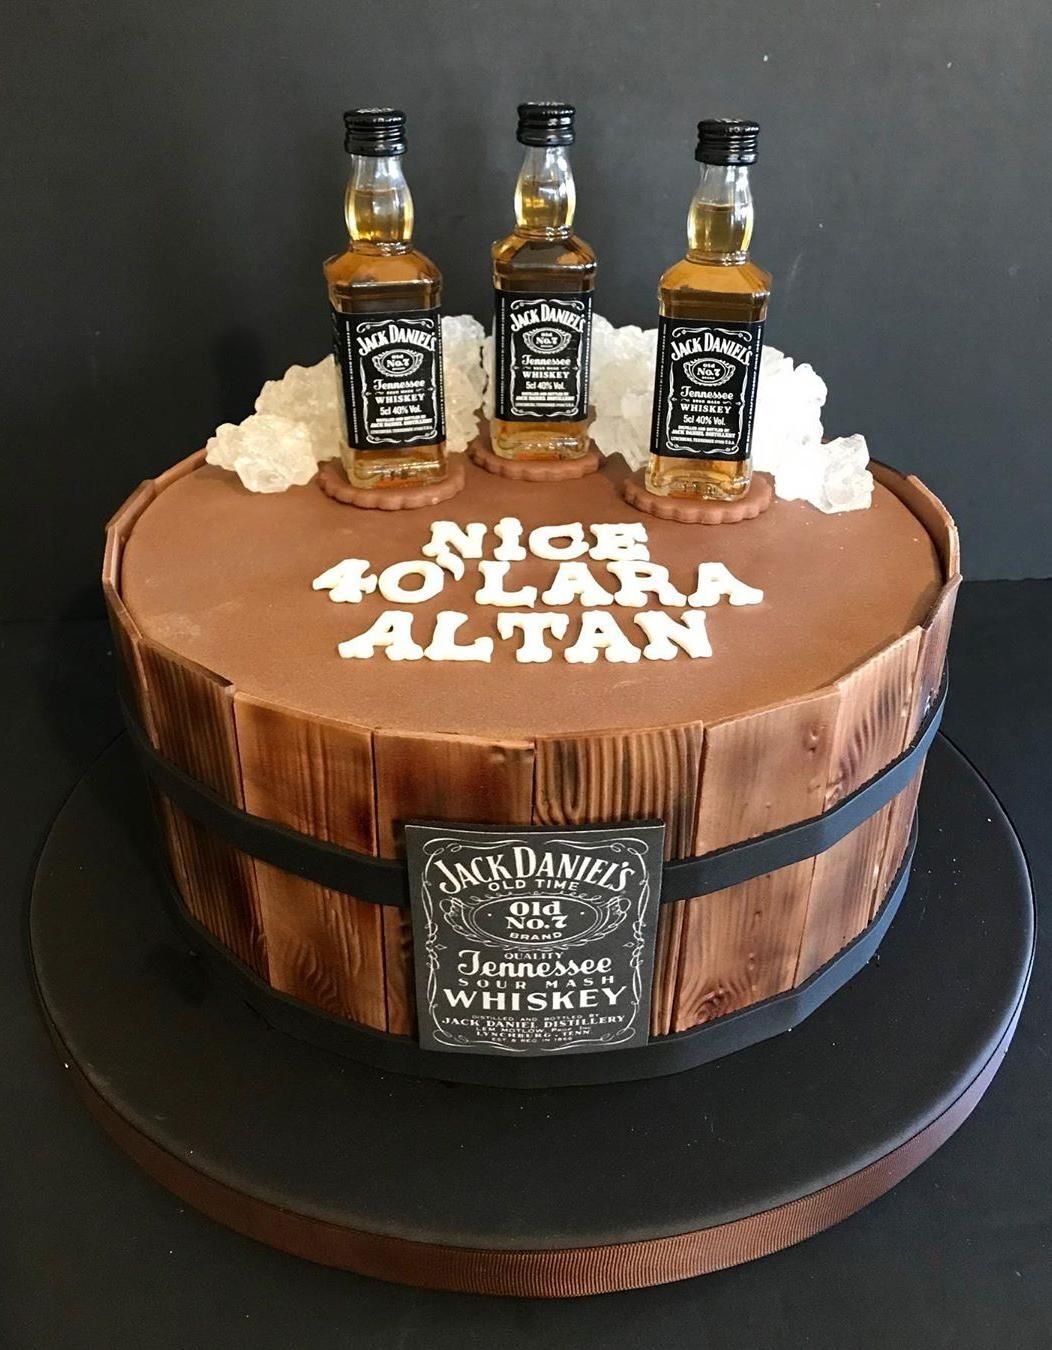 36 whiskey birthday cake design ideas for 2020people also